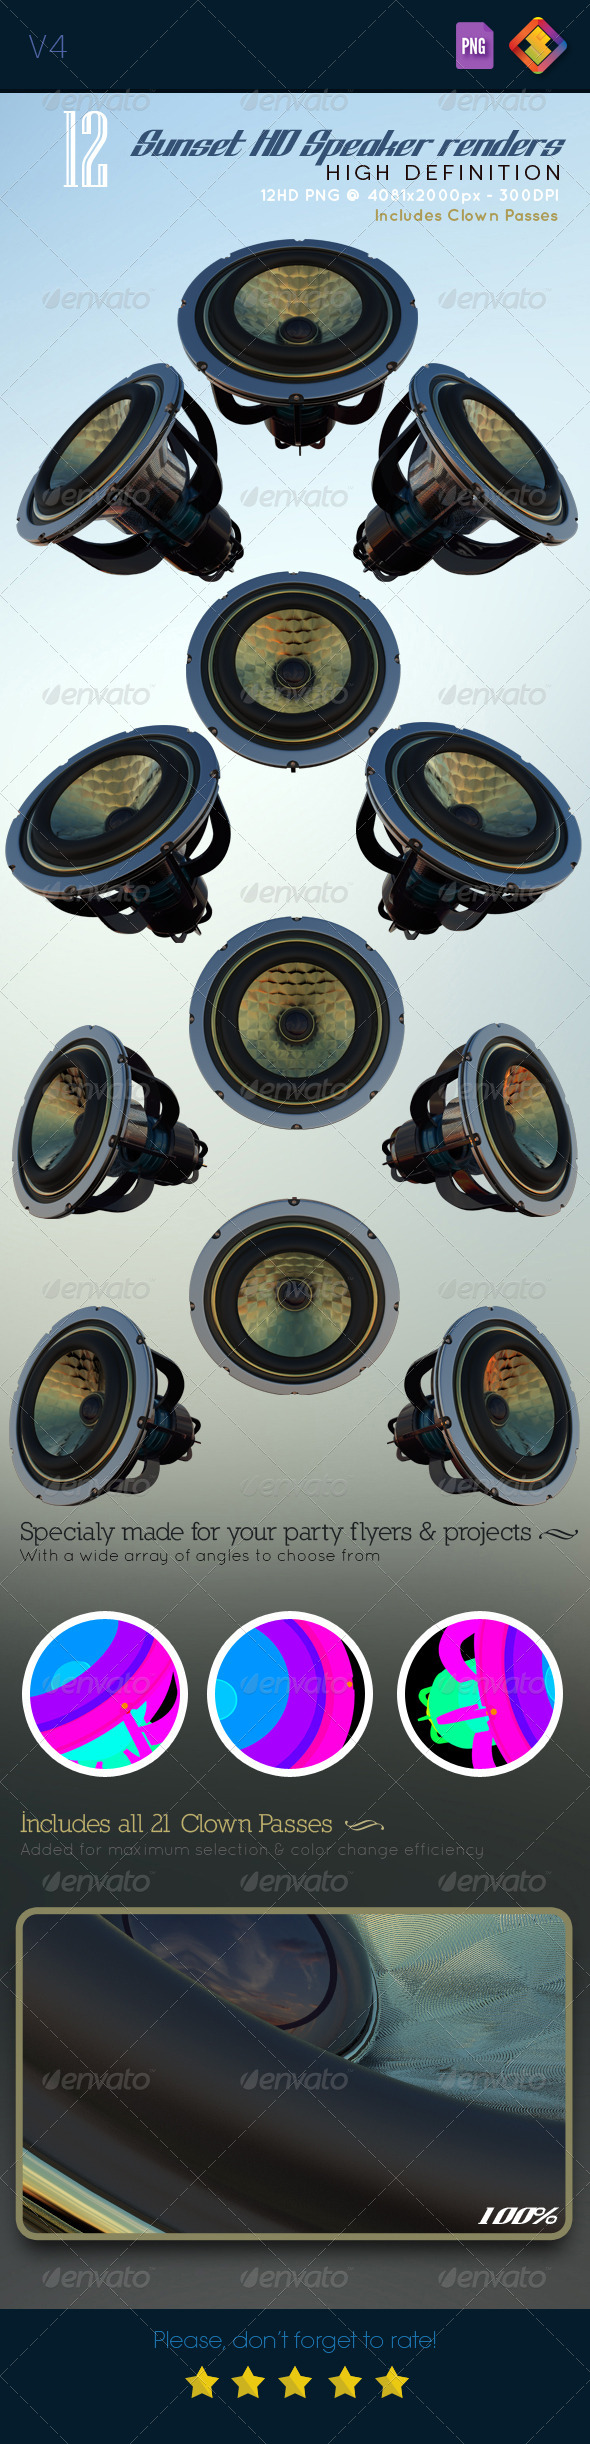 Sunset HD Speaker Renders V4 - Technology 3D Renders